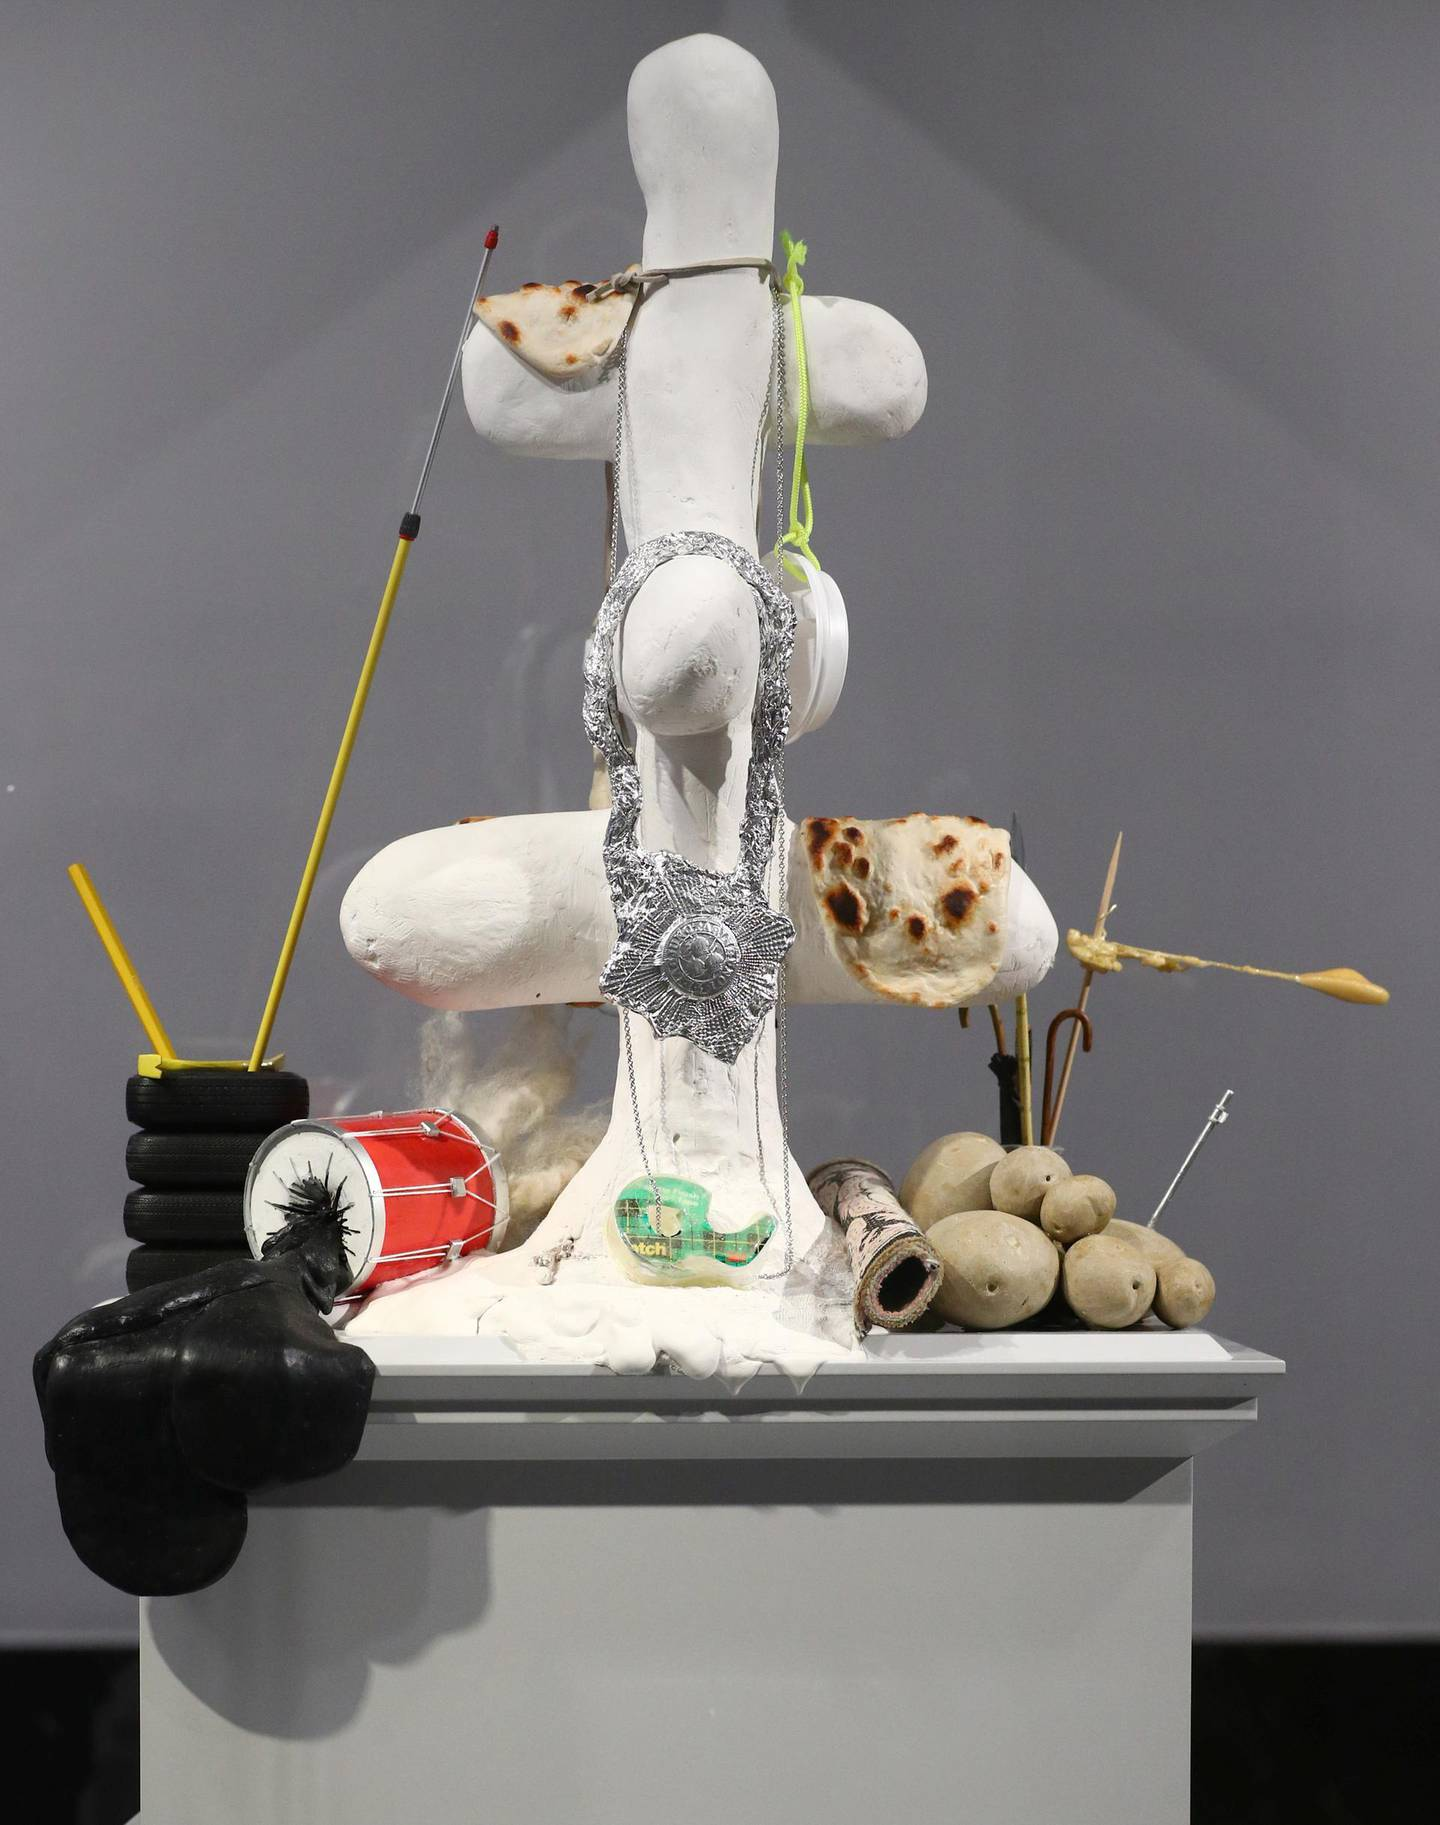 """""""The Jewellery Tree"""" by Nicole Eisenman, one of six artworks shortlisted as the next design for the Fourth Plinth at Trafalgar Square, is seen on display inside the National Gallery in London, Britain, May 24, 2021. REUTERS/Hannah McKay"""